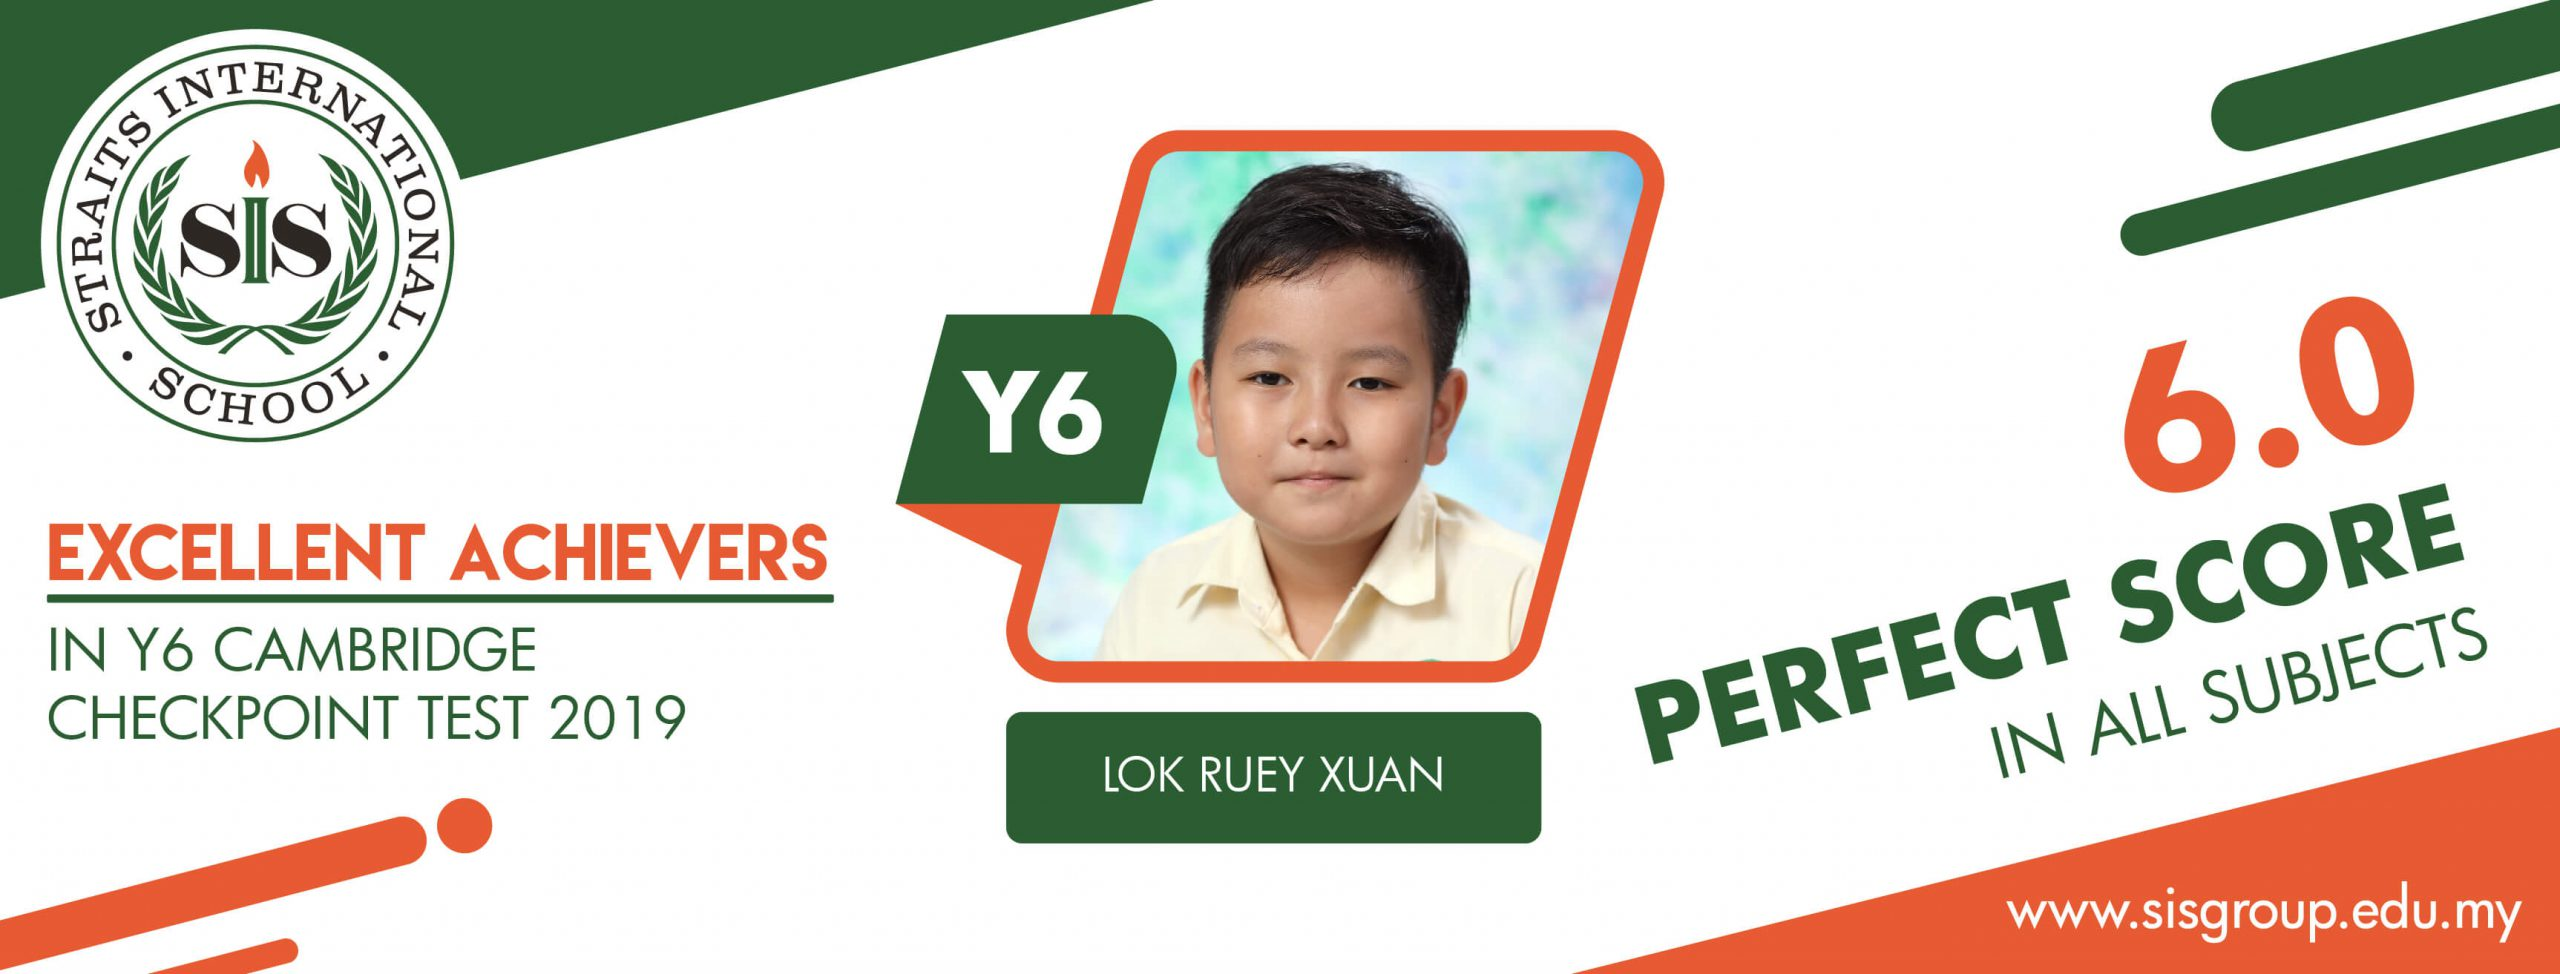 Lok Ruey Xuan, excellent achievers in Y6 Cambridge checkpoint test 2019